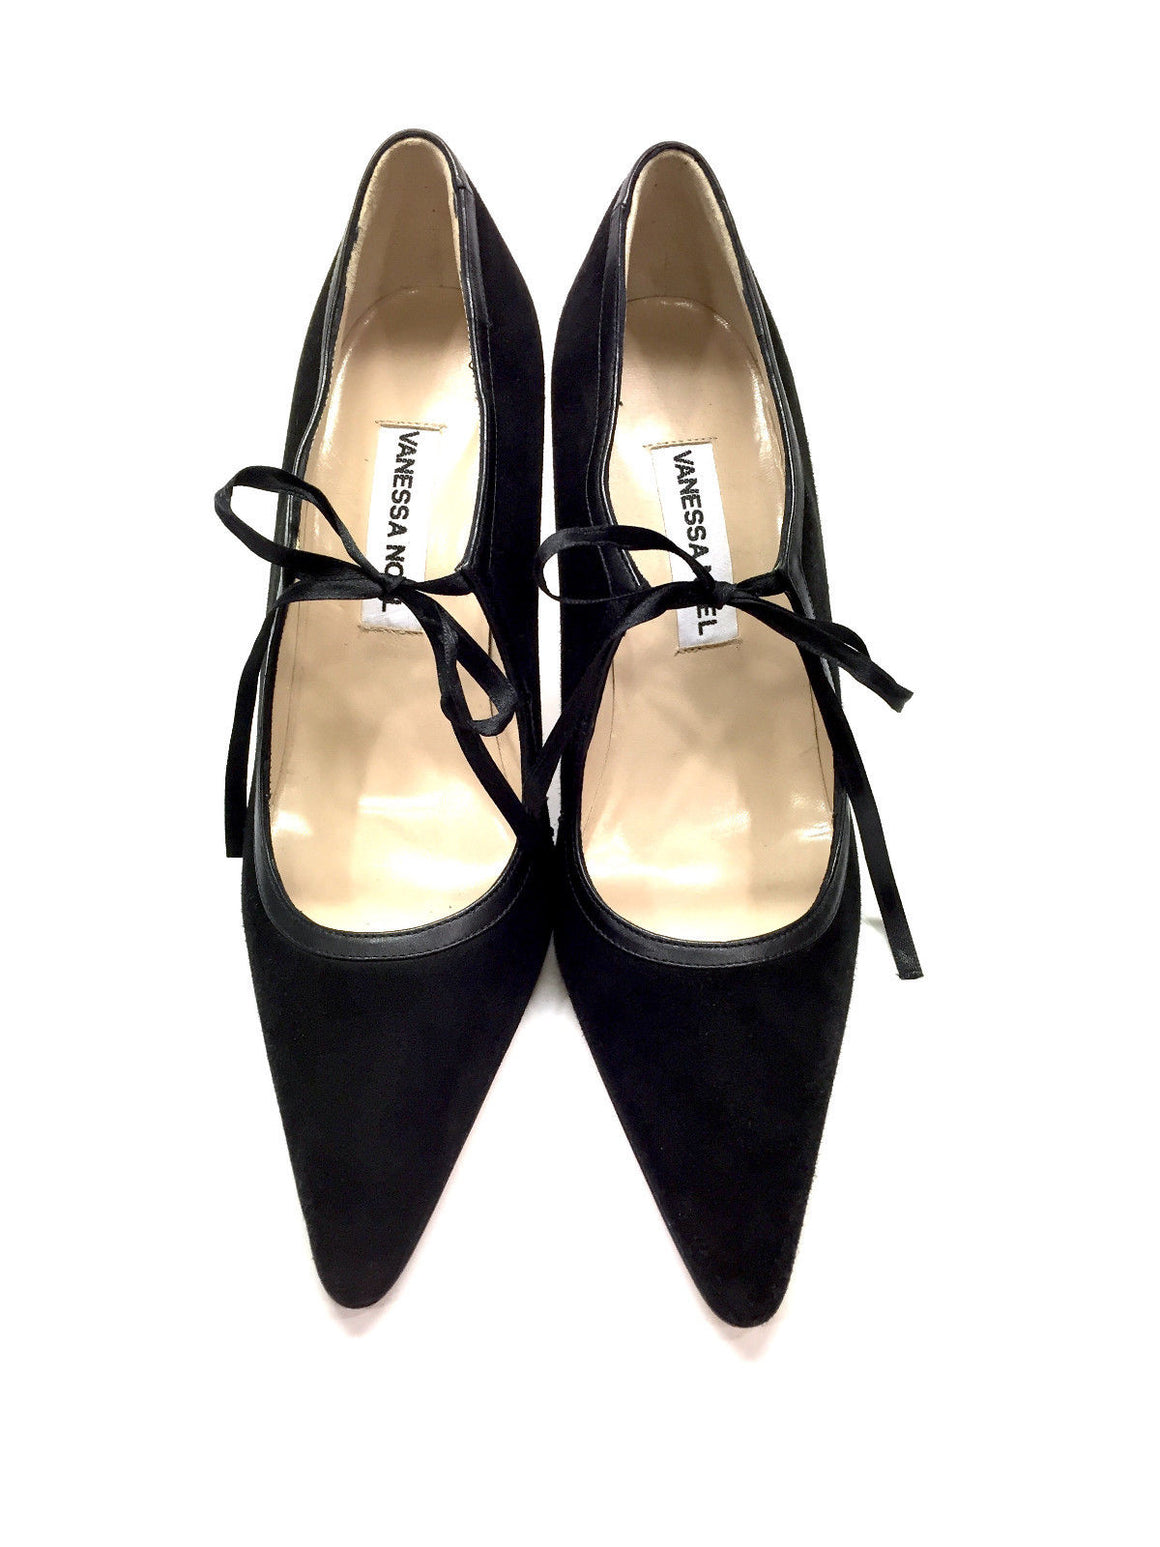 bisbiz.com VANESSA NOEL Black Suede Ribbon-Tie Mary Jane Heel Pumps Size: 37 / 7 - Bis Luxury Resale